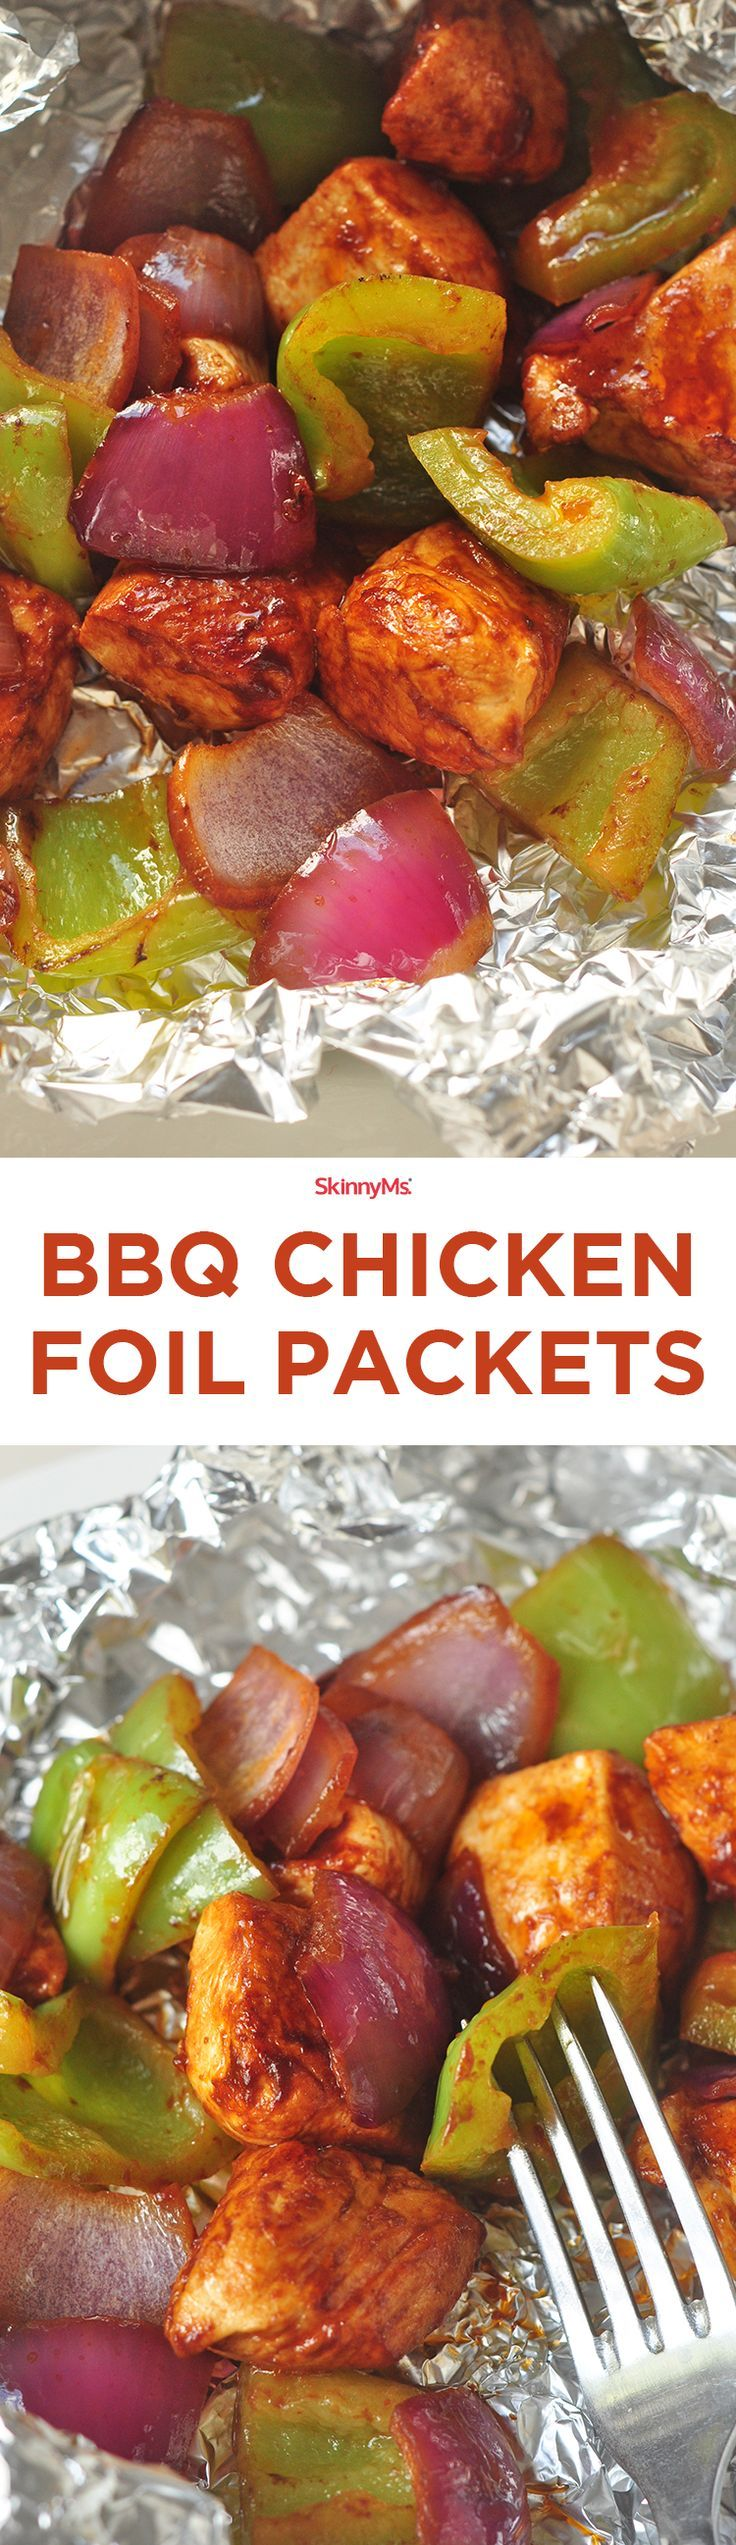 Foil chicken packets 28 images foil pack italian for Chicken and vegetables in foil packets recipe